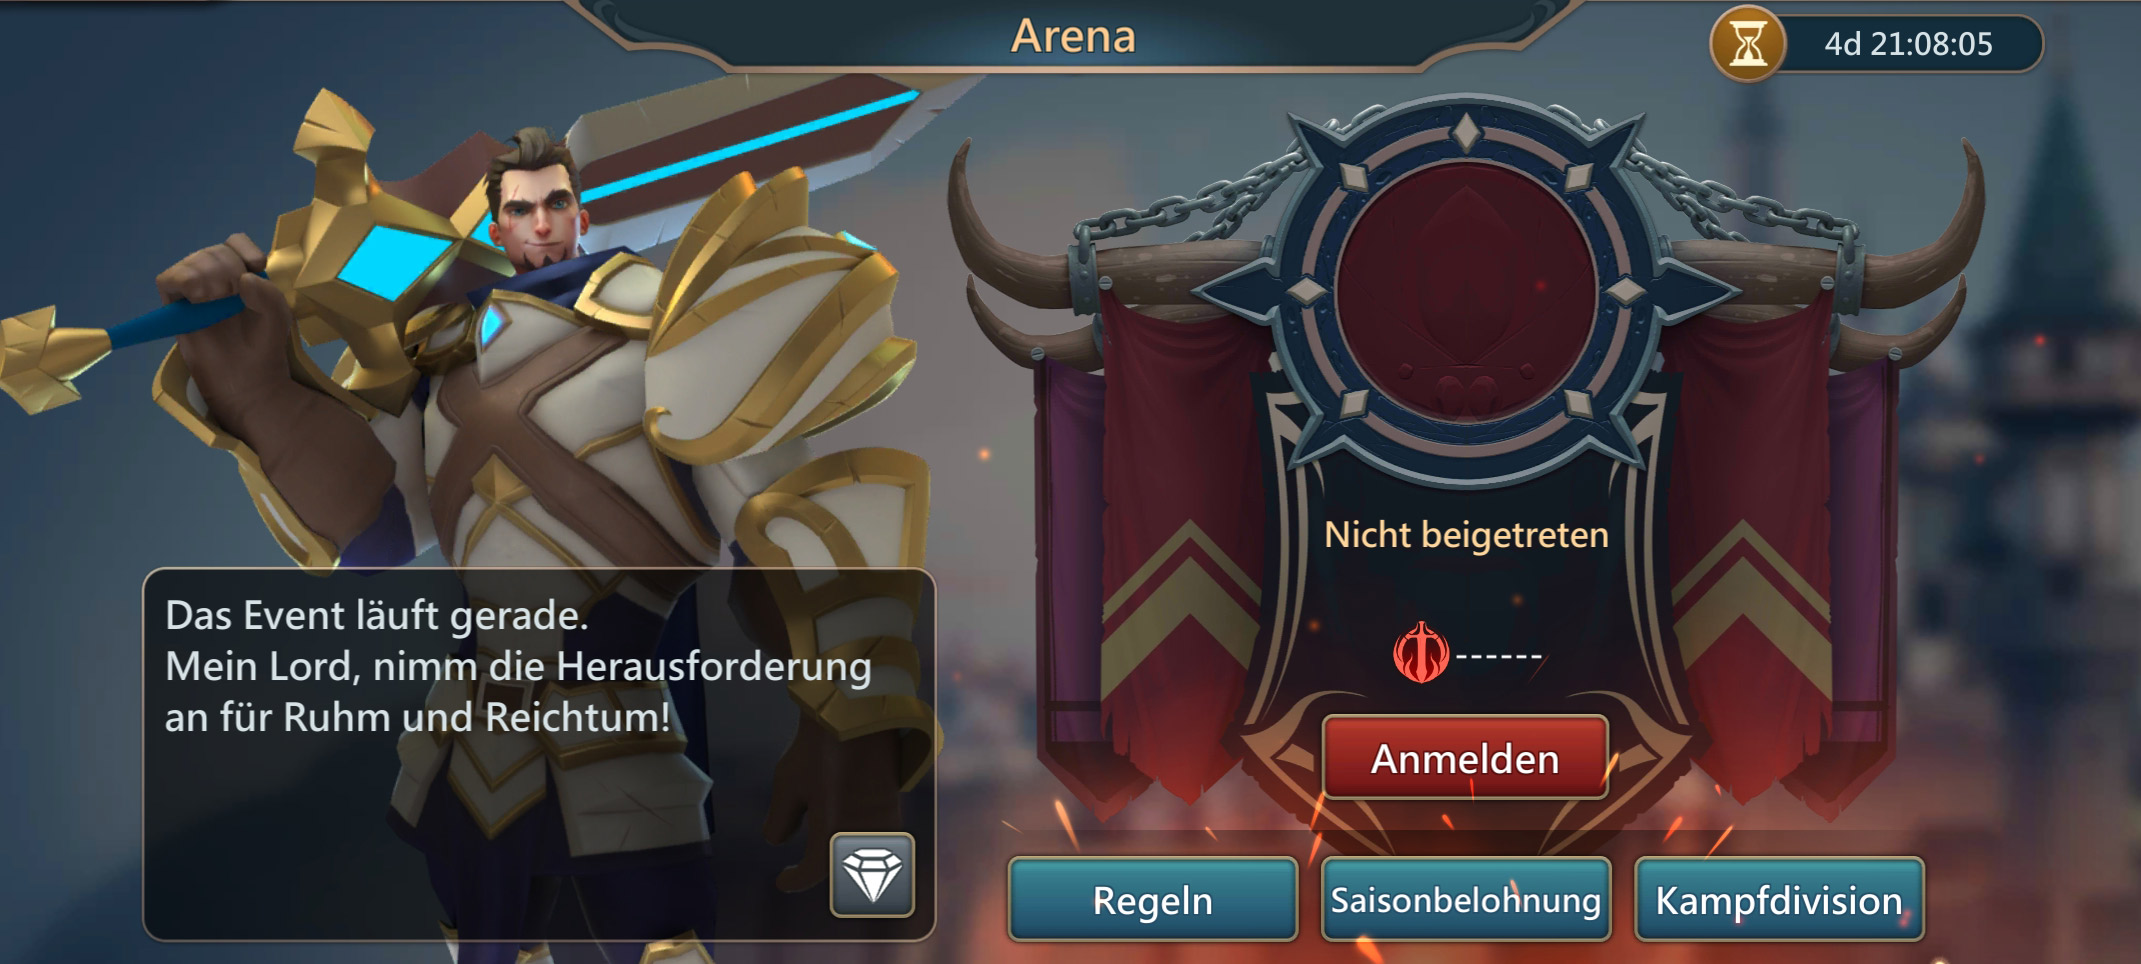 Mobile Royale Arena